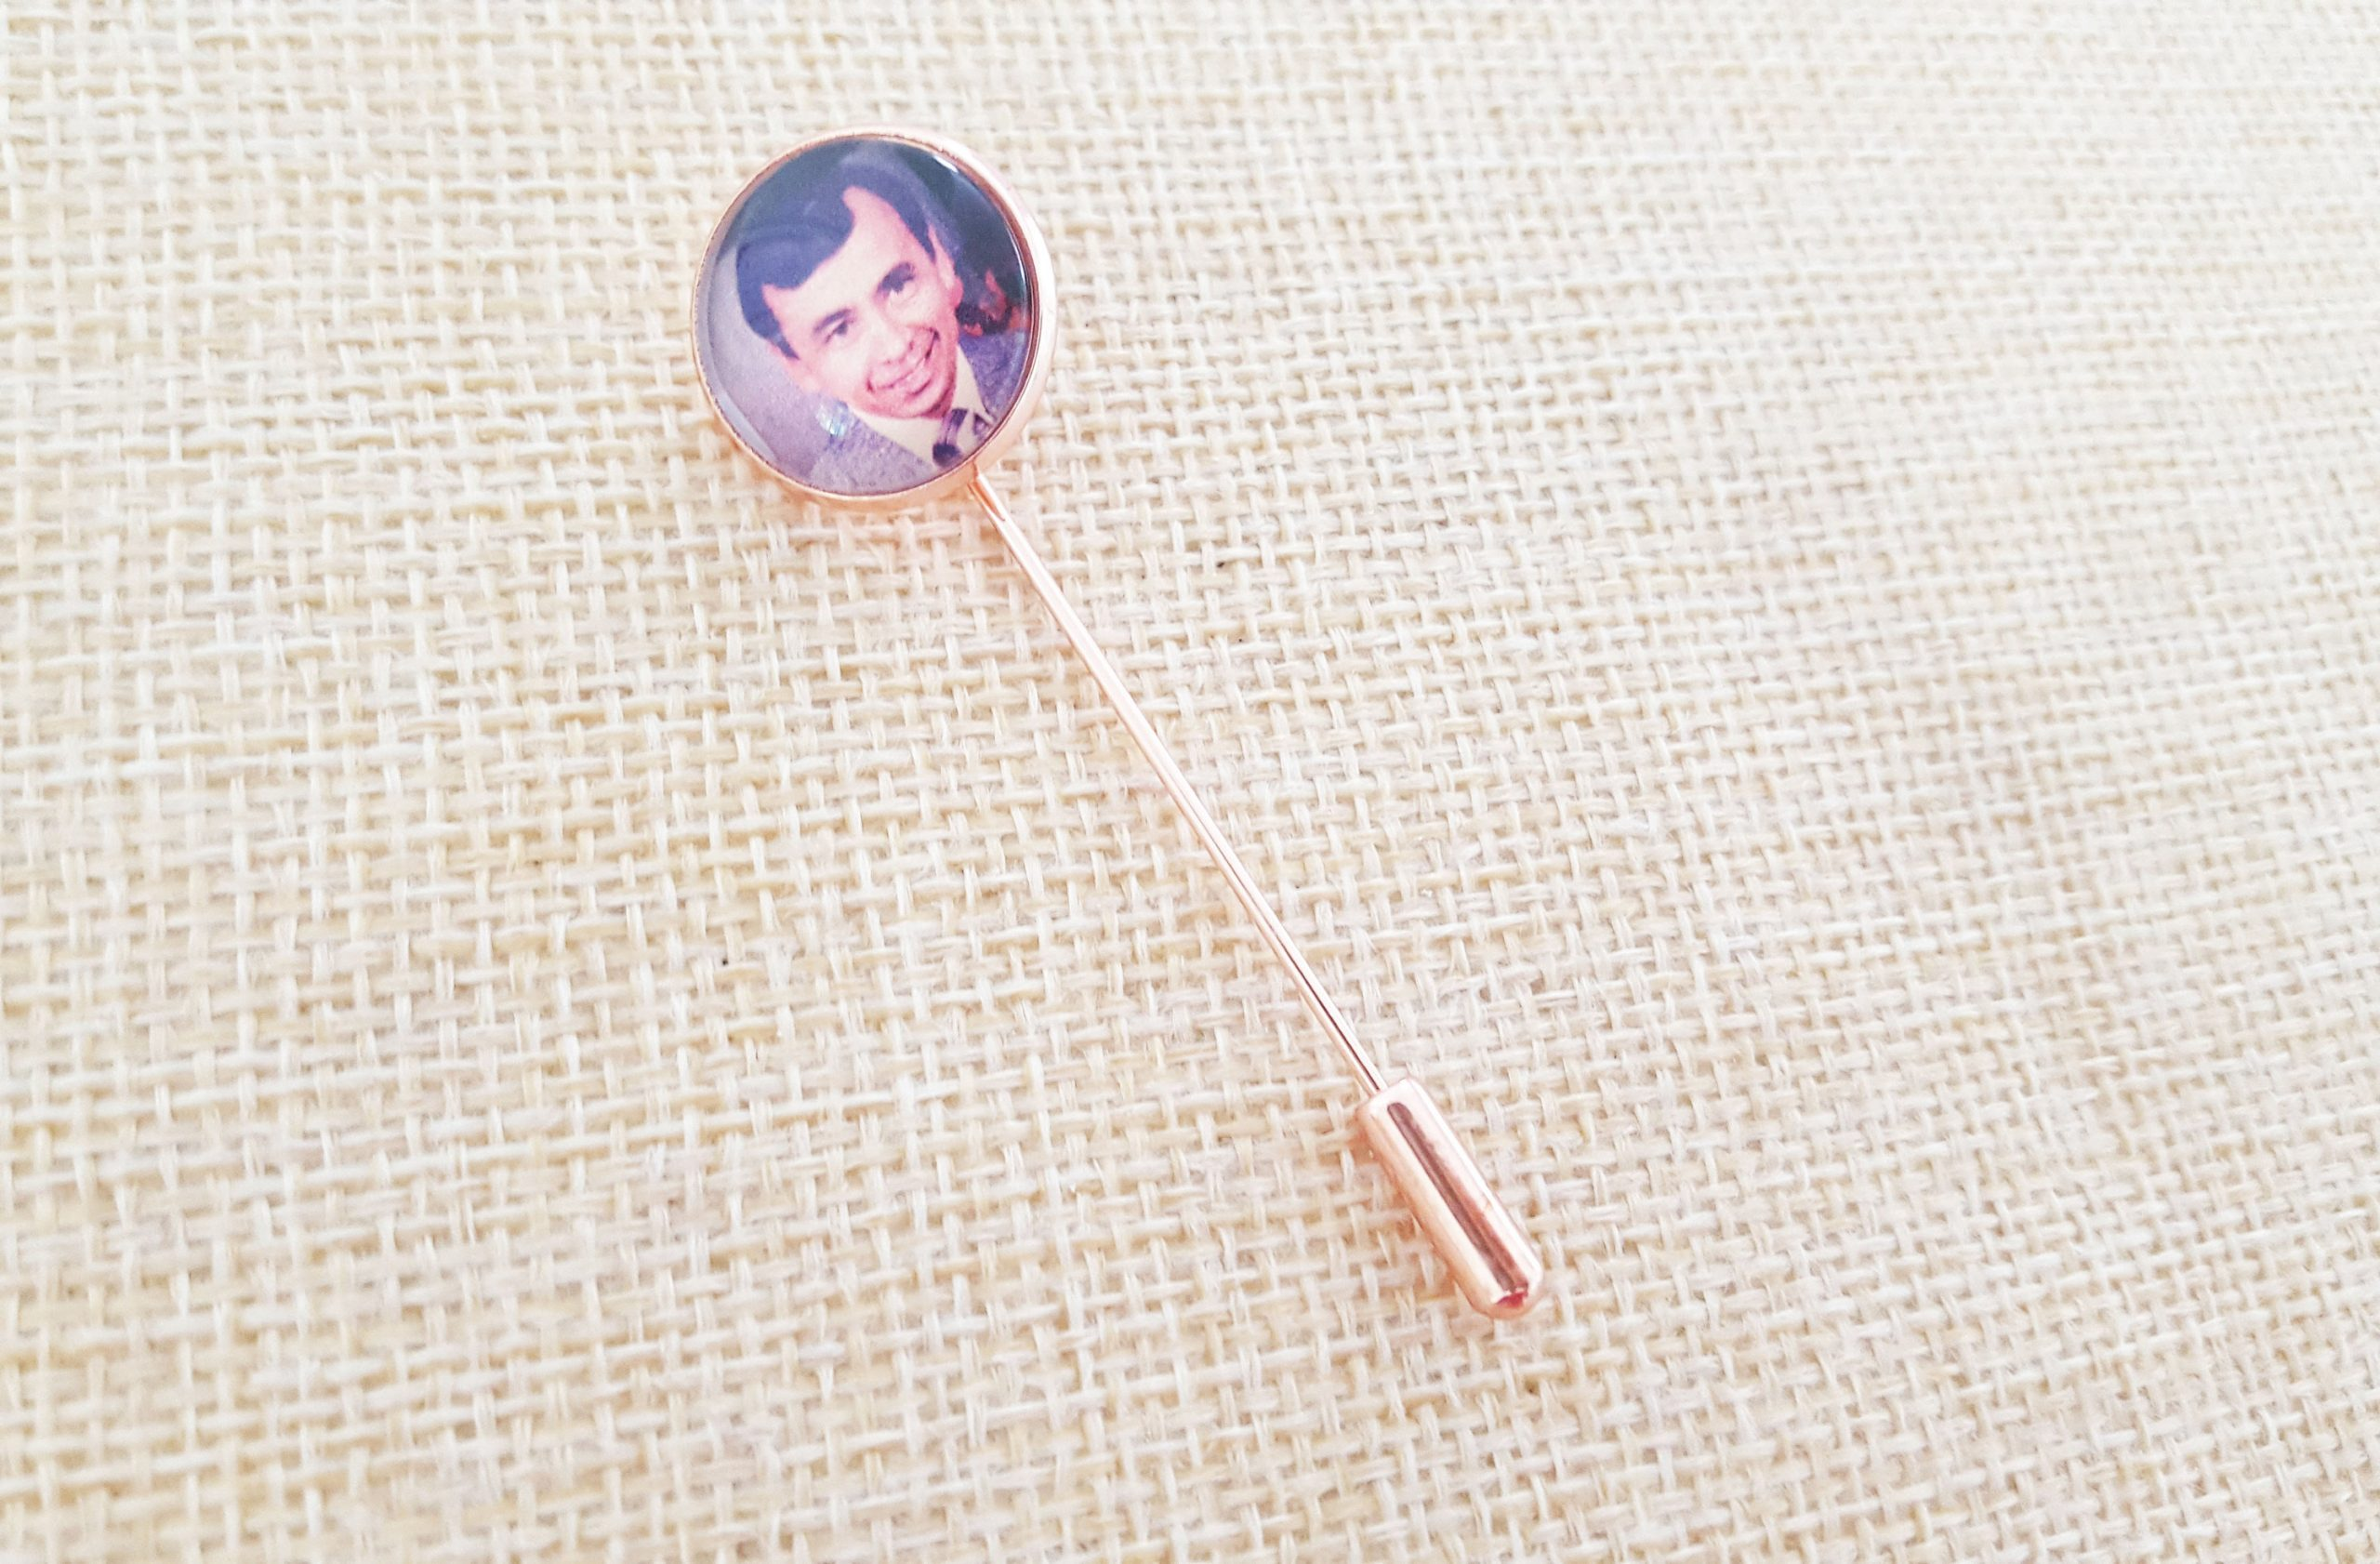 Rose Gold, Gold Or Silver Boutonniere Charm Lapel Pin Memorial Photo Keepsake - Customised With Your Own Photo